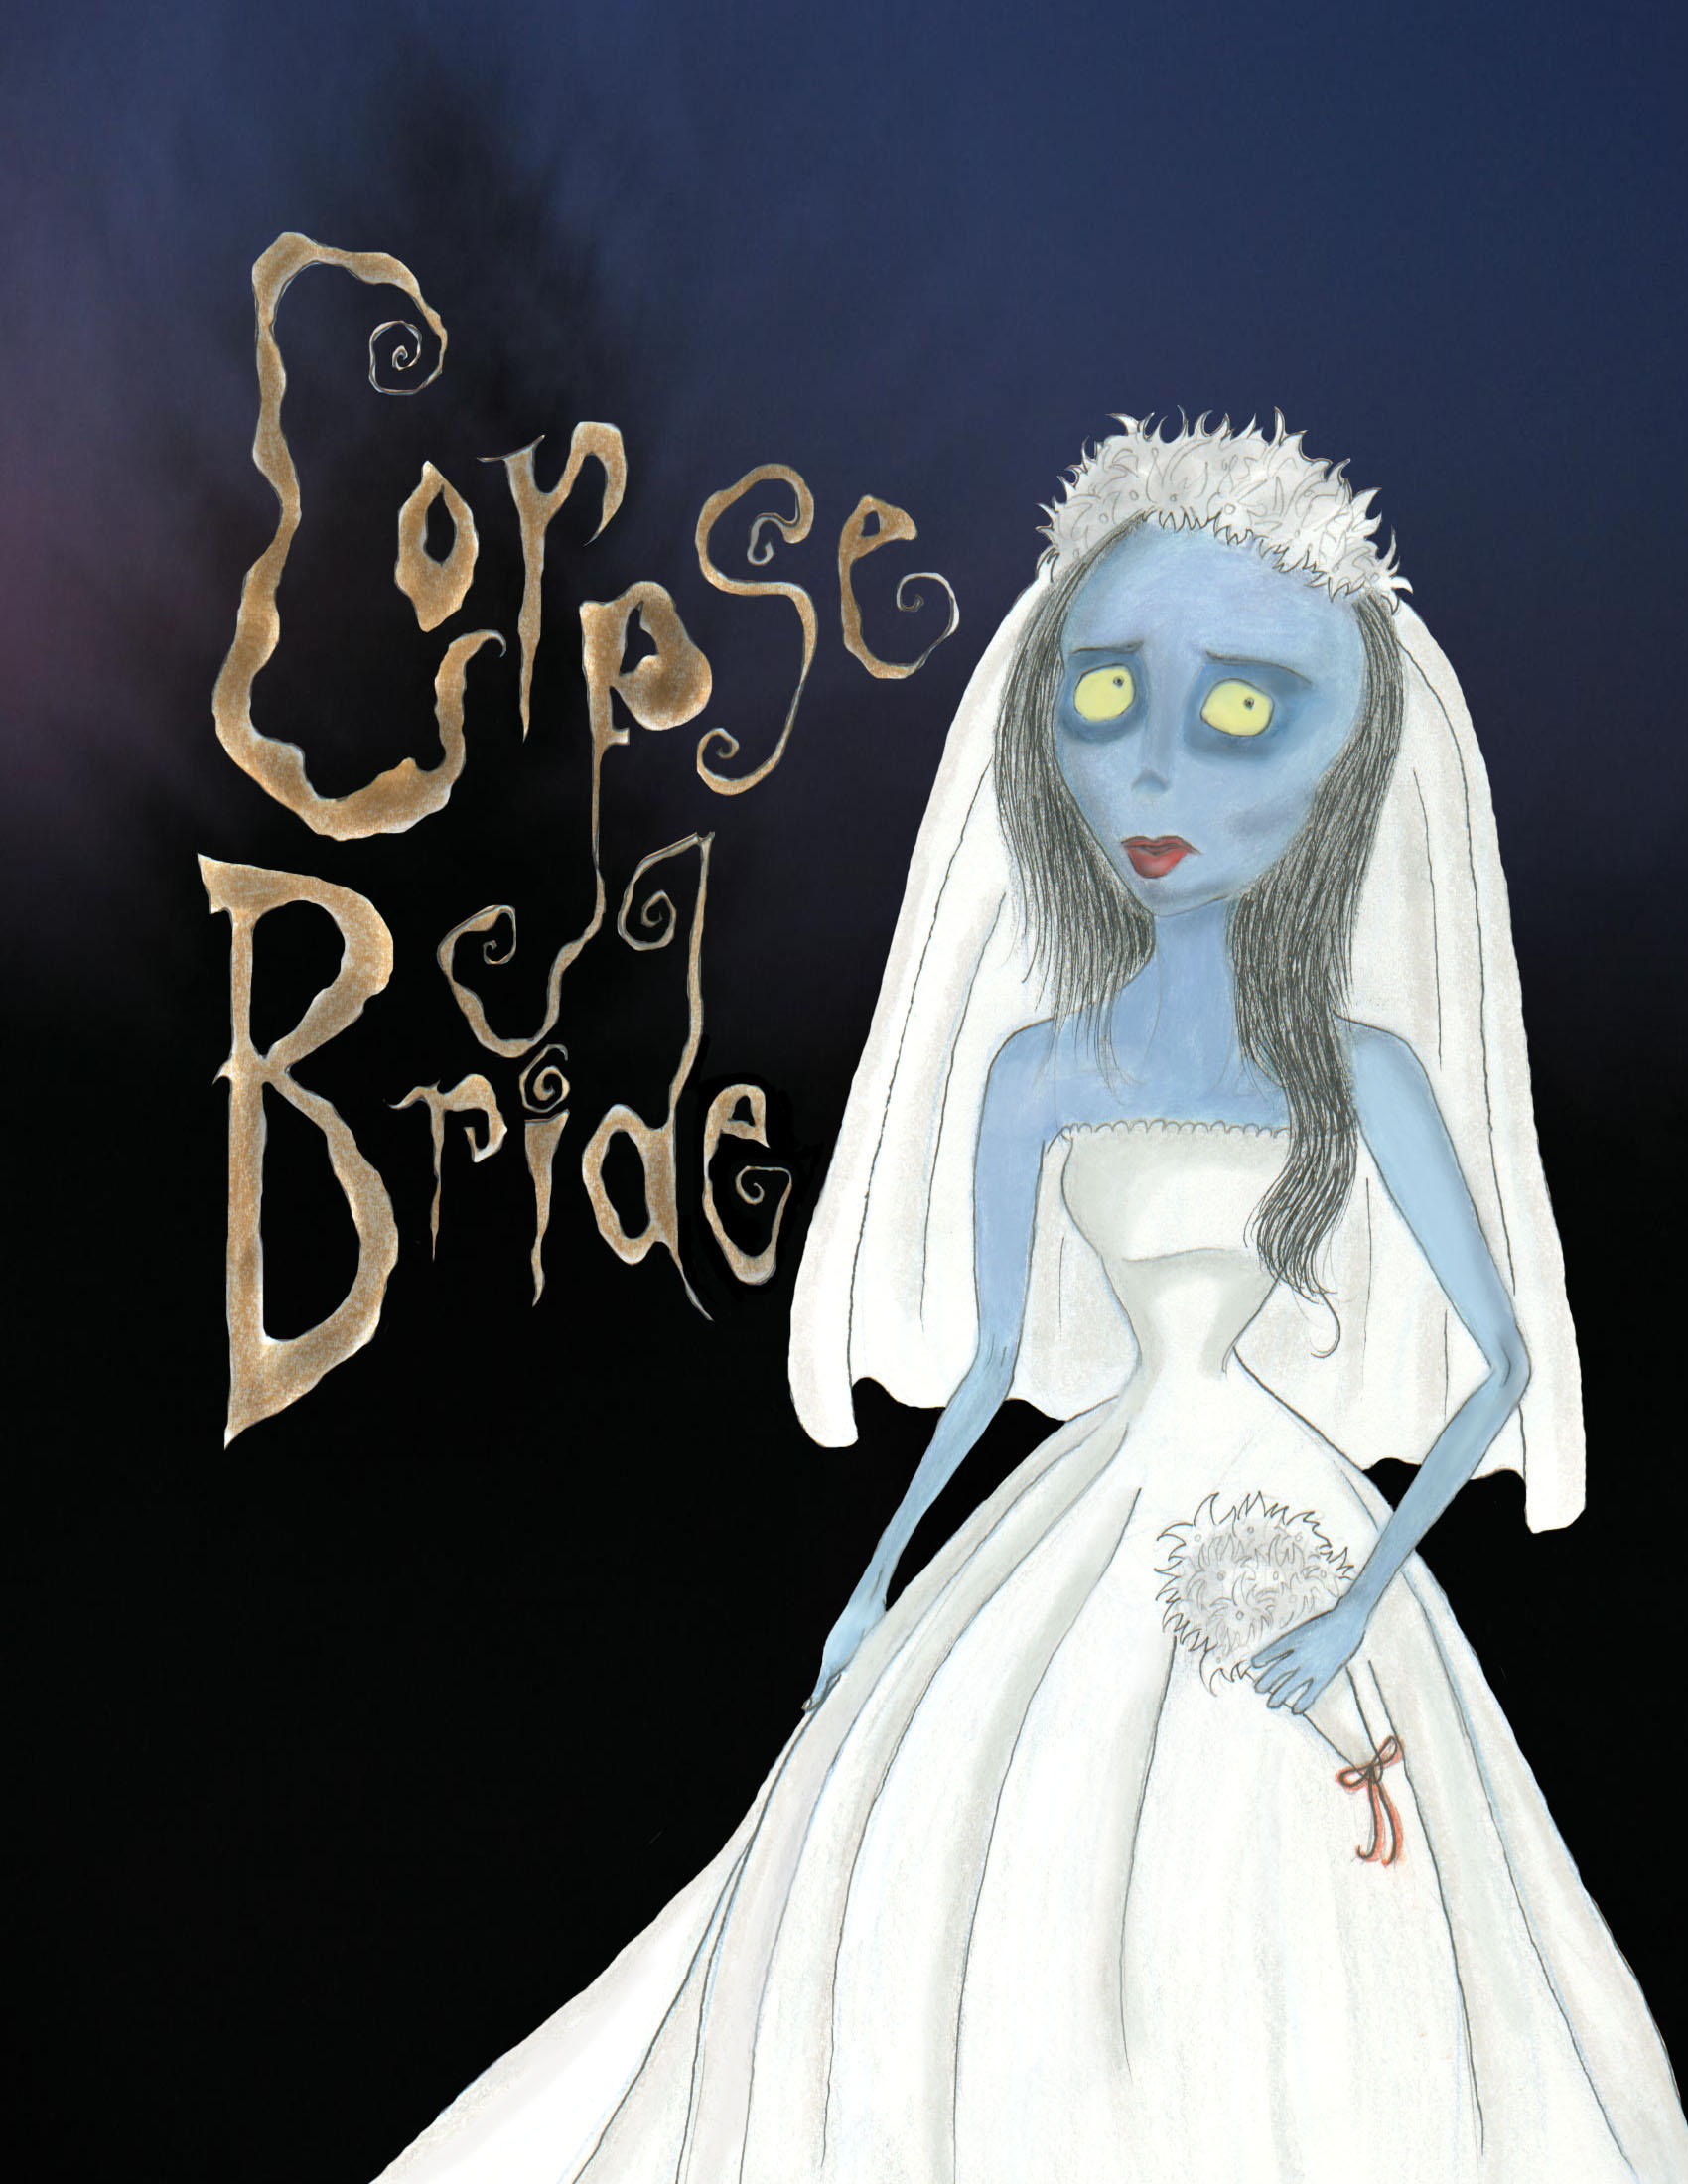 the corpse bride by tim burton essay Eating jelly bellys and writing essay proposals after a wonderful weekend with my wonderful boy 3 essay describing a garden purpose of life college essay dbq essay.